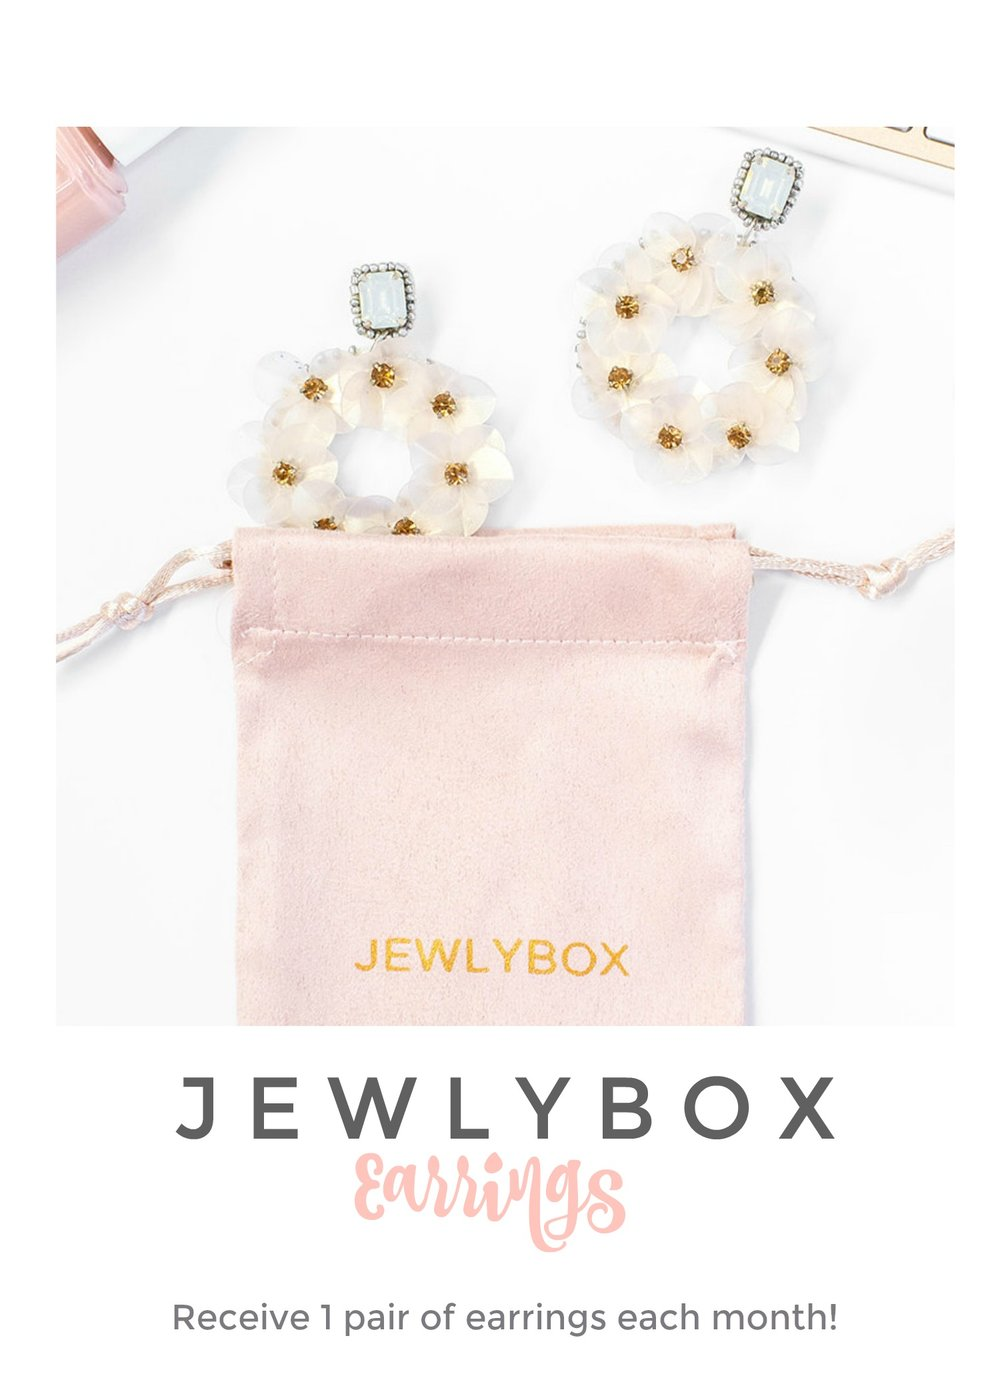 Jewlybox Product Image - Earrings.jpg